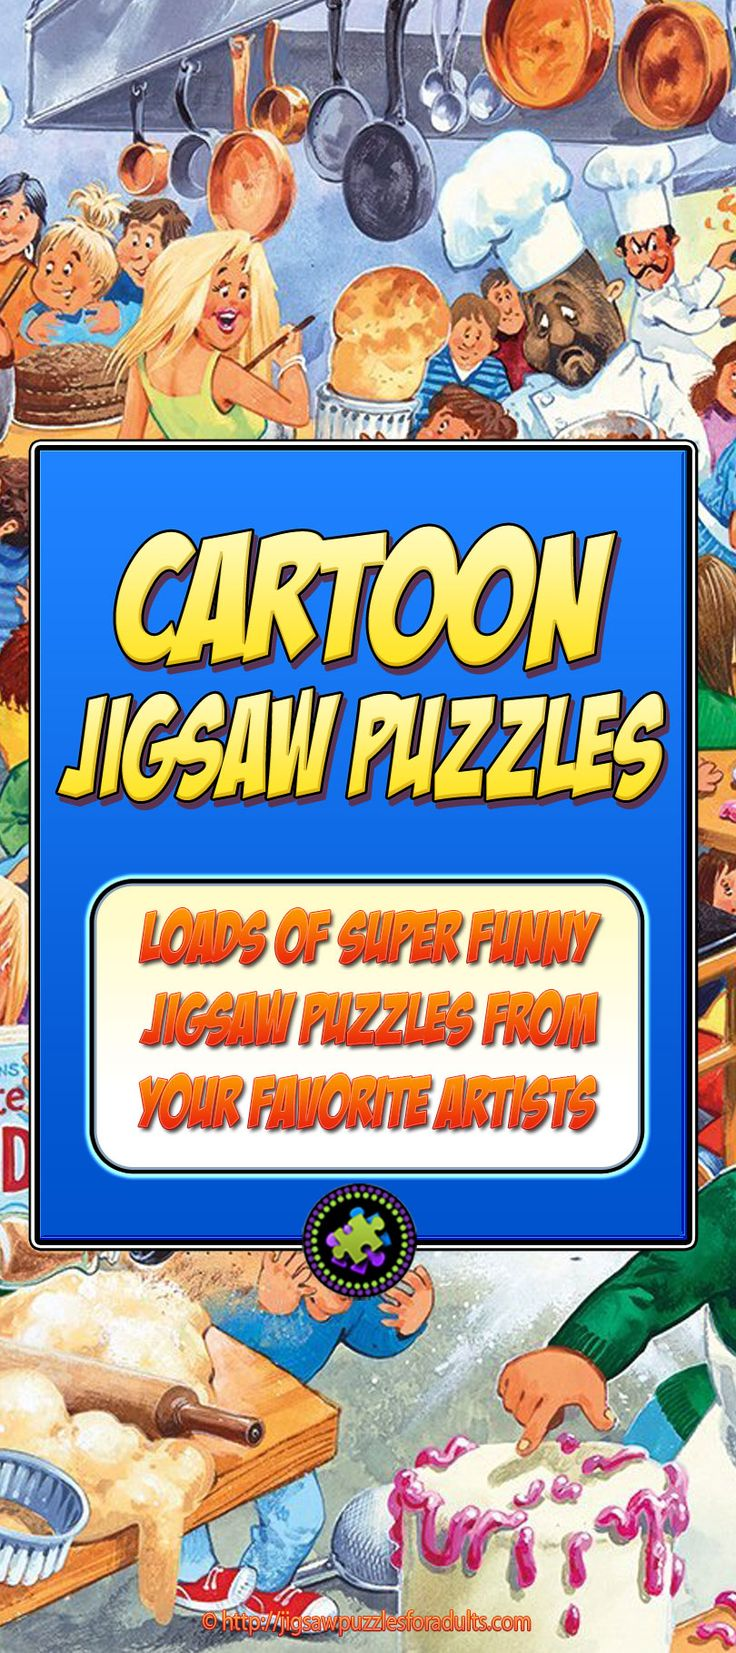 Cartoon Jigsaw Puzzles are the absolute BEST! Do you love comedy? If so, then you'll really enjoy our selection Cartoon Jigsaw Puzzles.If you're an avid jigsaw puzzler and you'd like to try a new style of jigsaw puzzle then these cartoon art jigsaw puzzles are ideal.